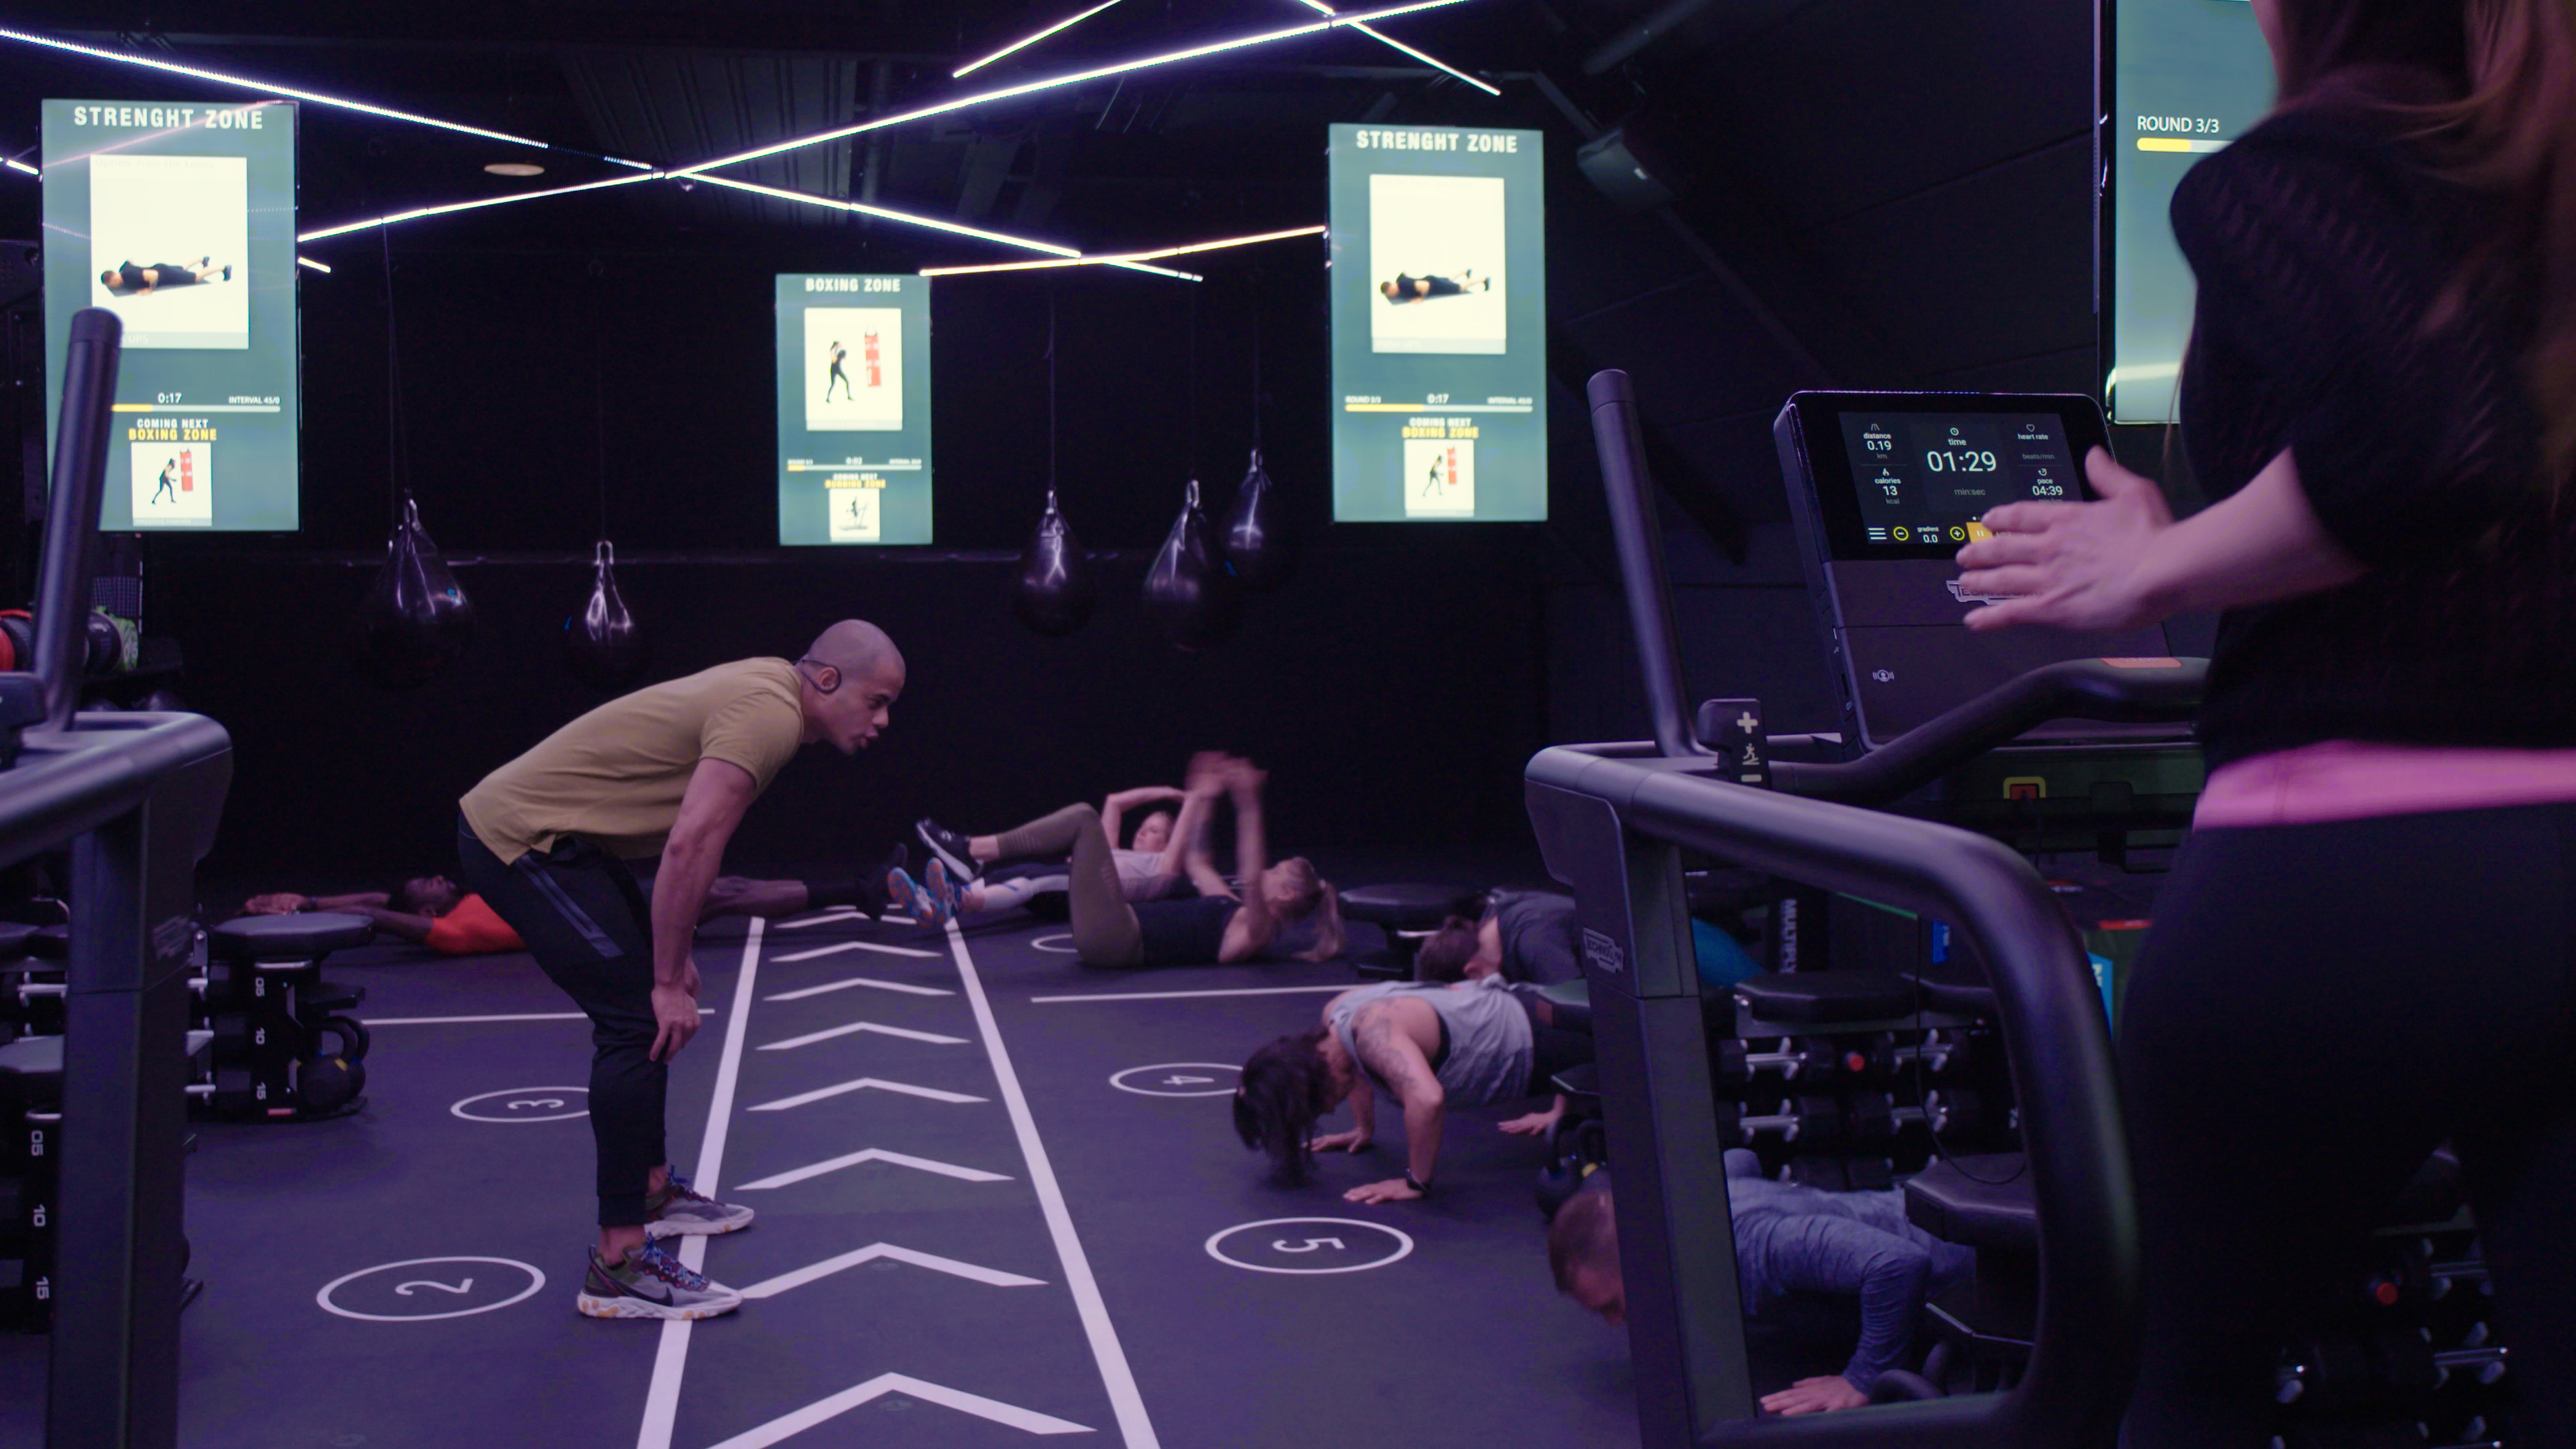 Fitness Pop-Up in Amsterdam, powered by FunXtion, provides taster of first SportCity Premium Club